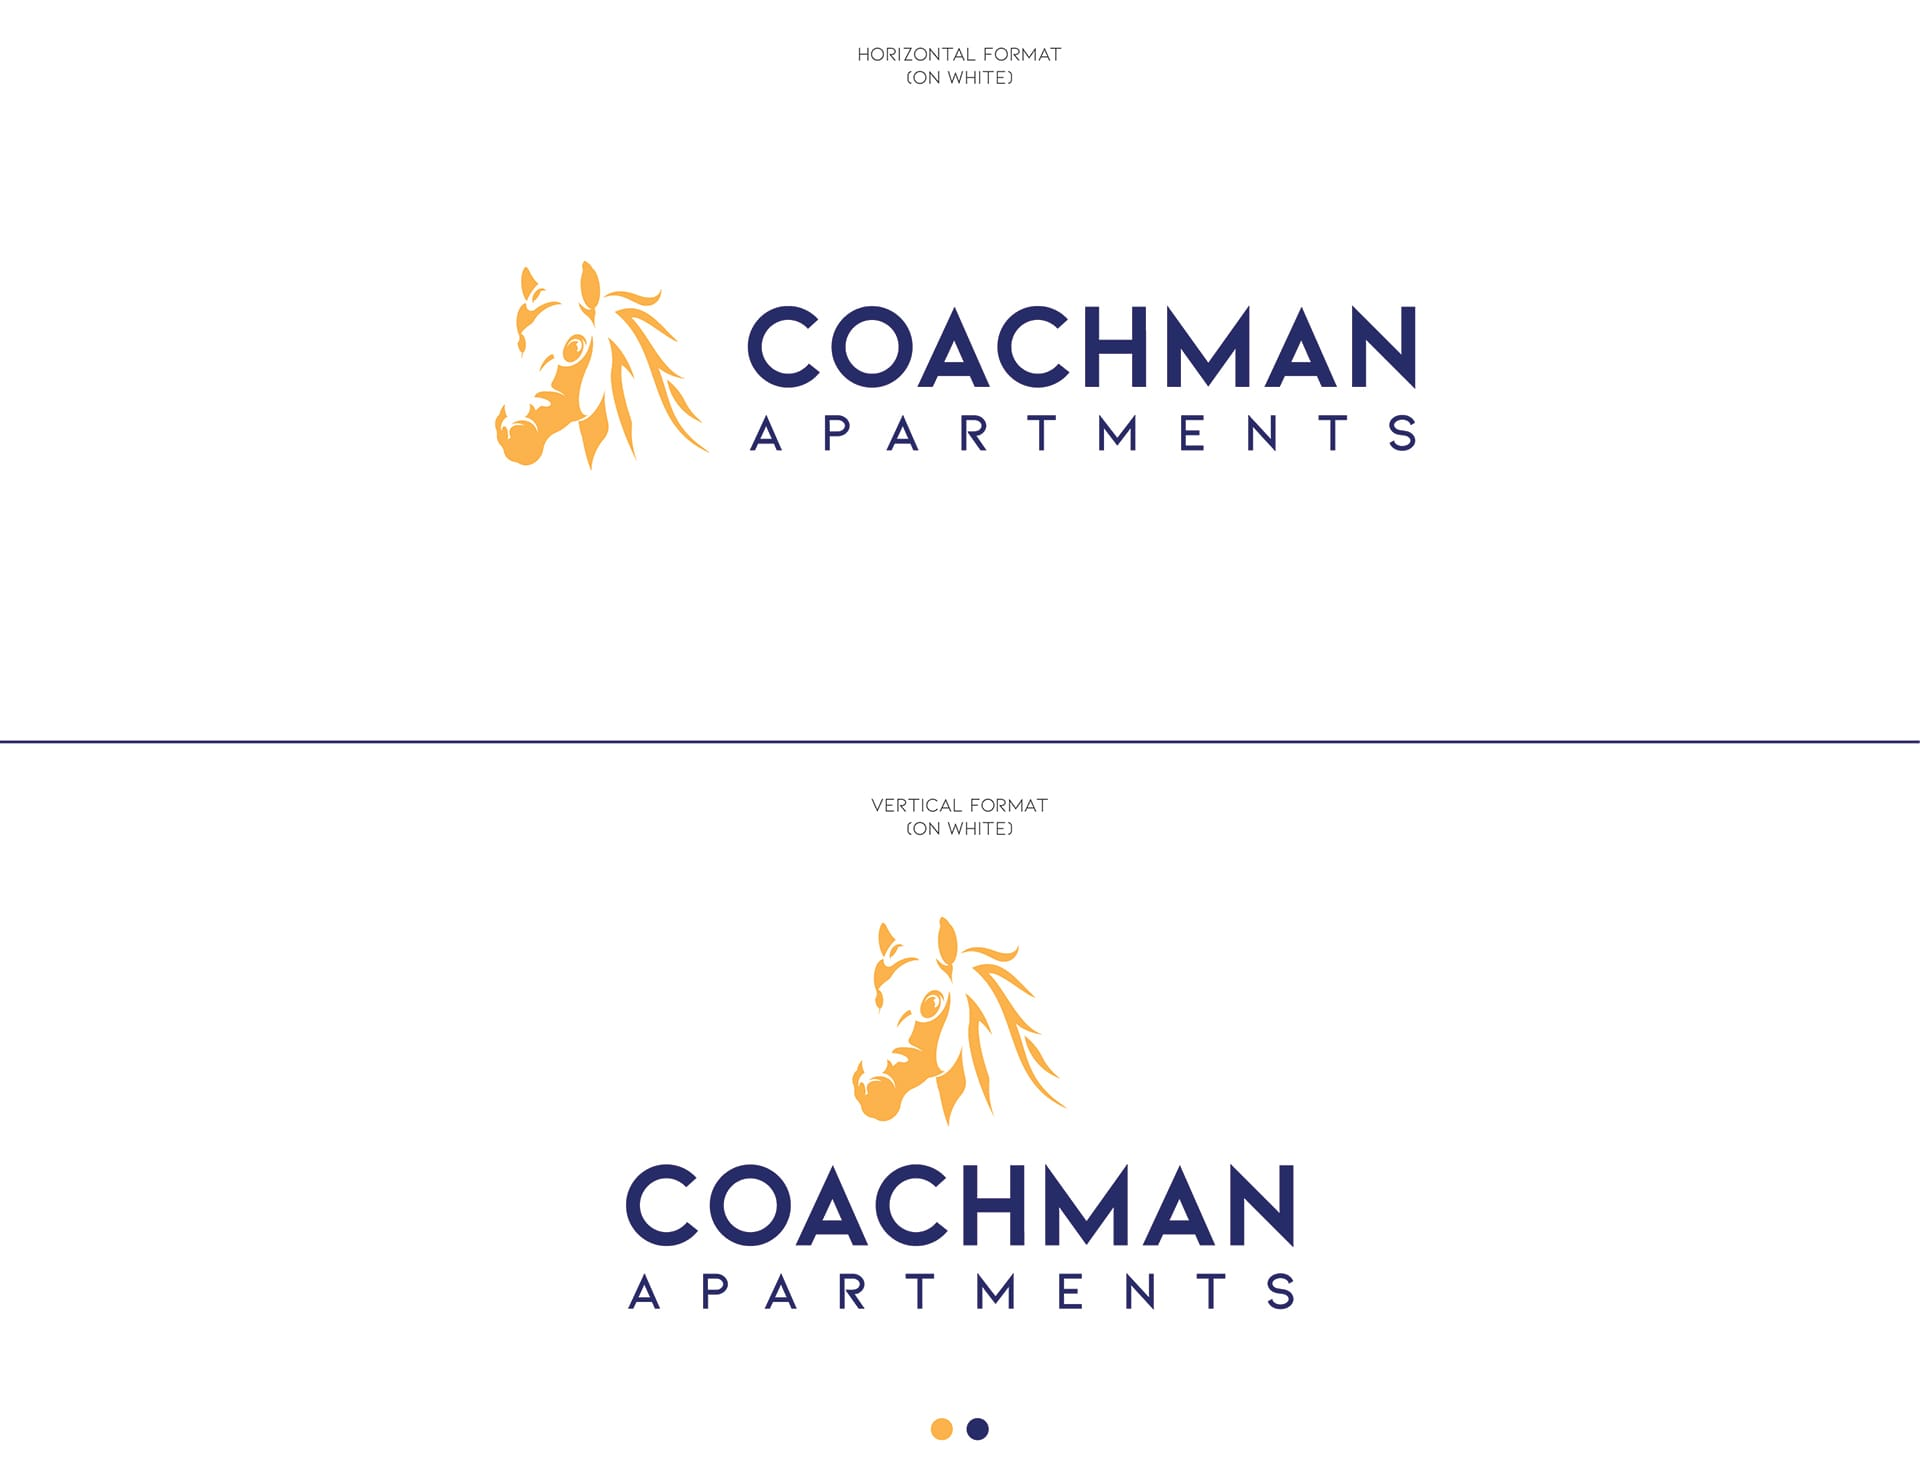 Coachman Logo Design - On White